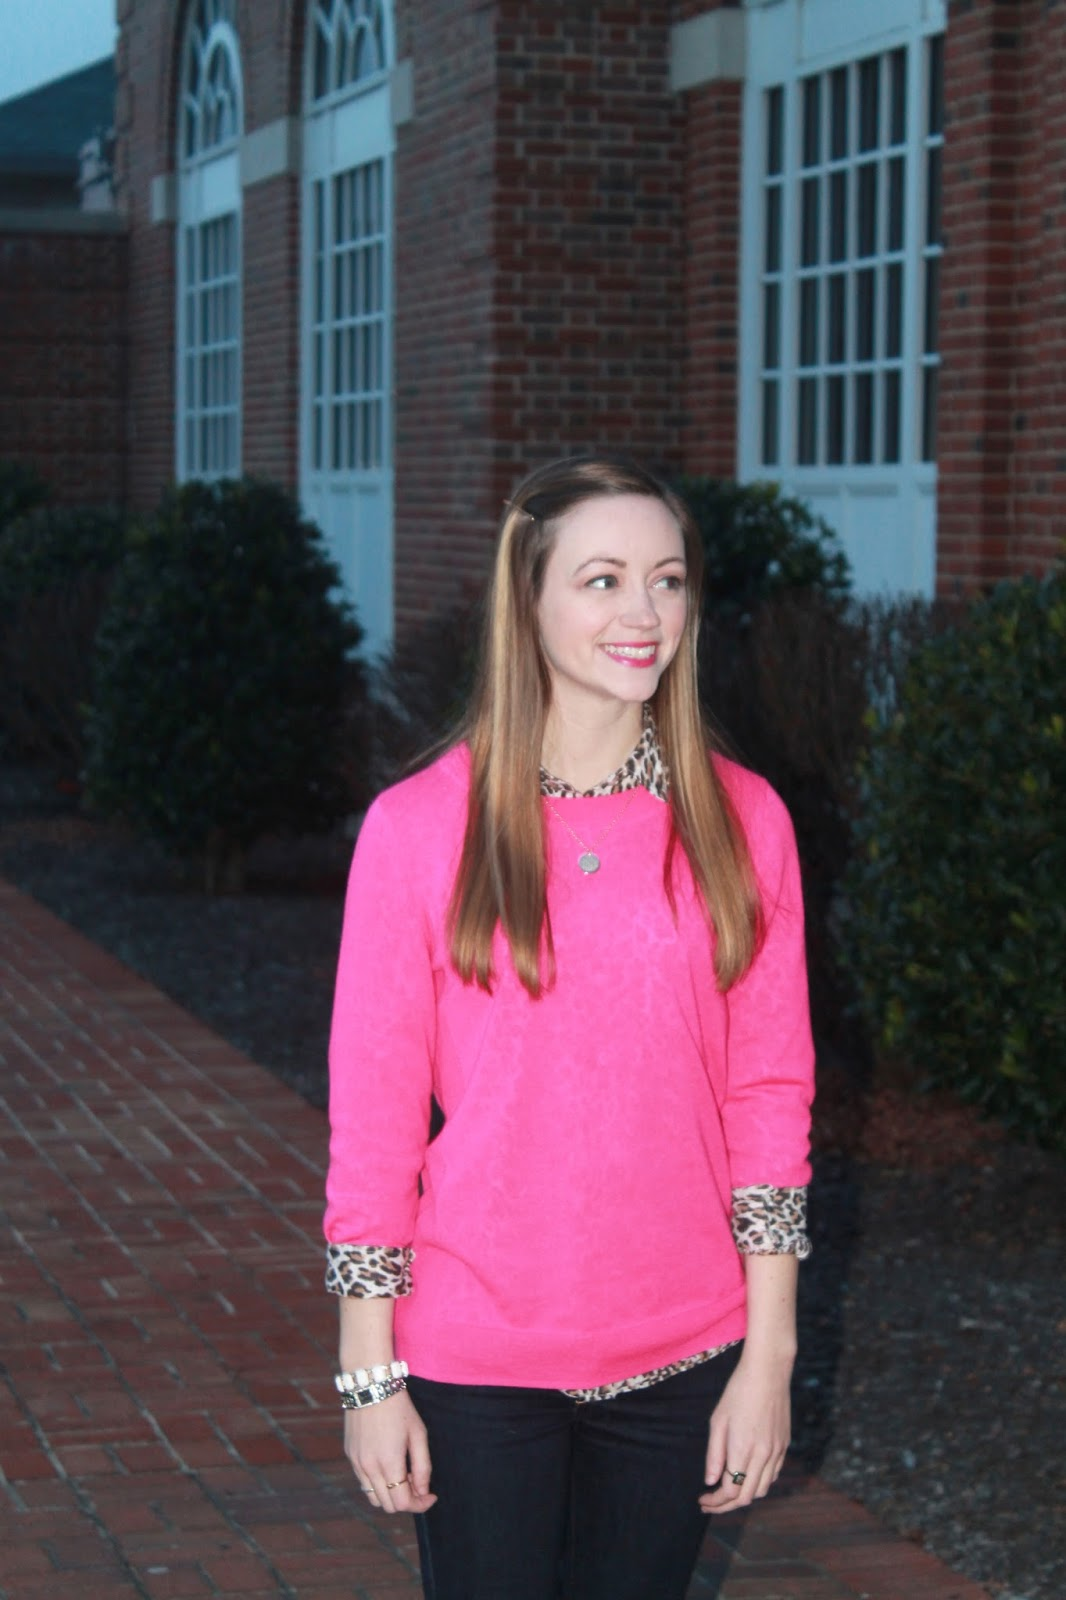 J.Crew cheetah print button up & pink sweater, Gold monogrammed necklace Marley Lilly